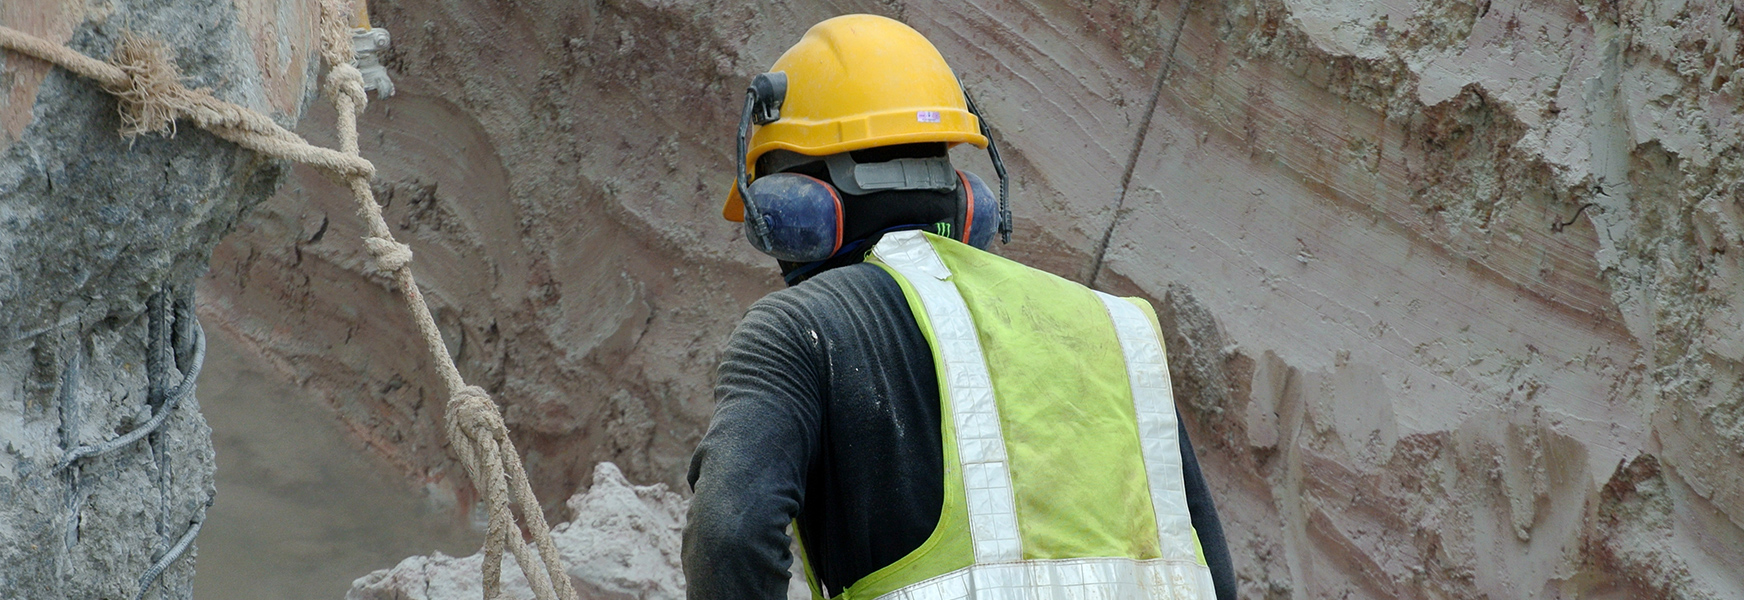 Man working with silica